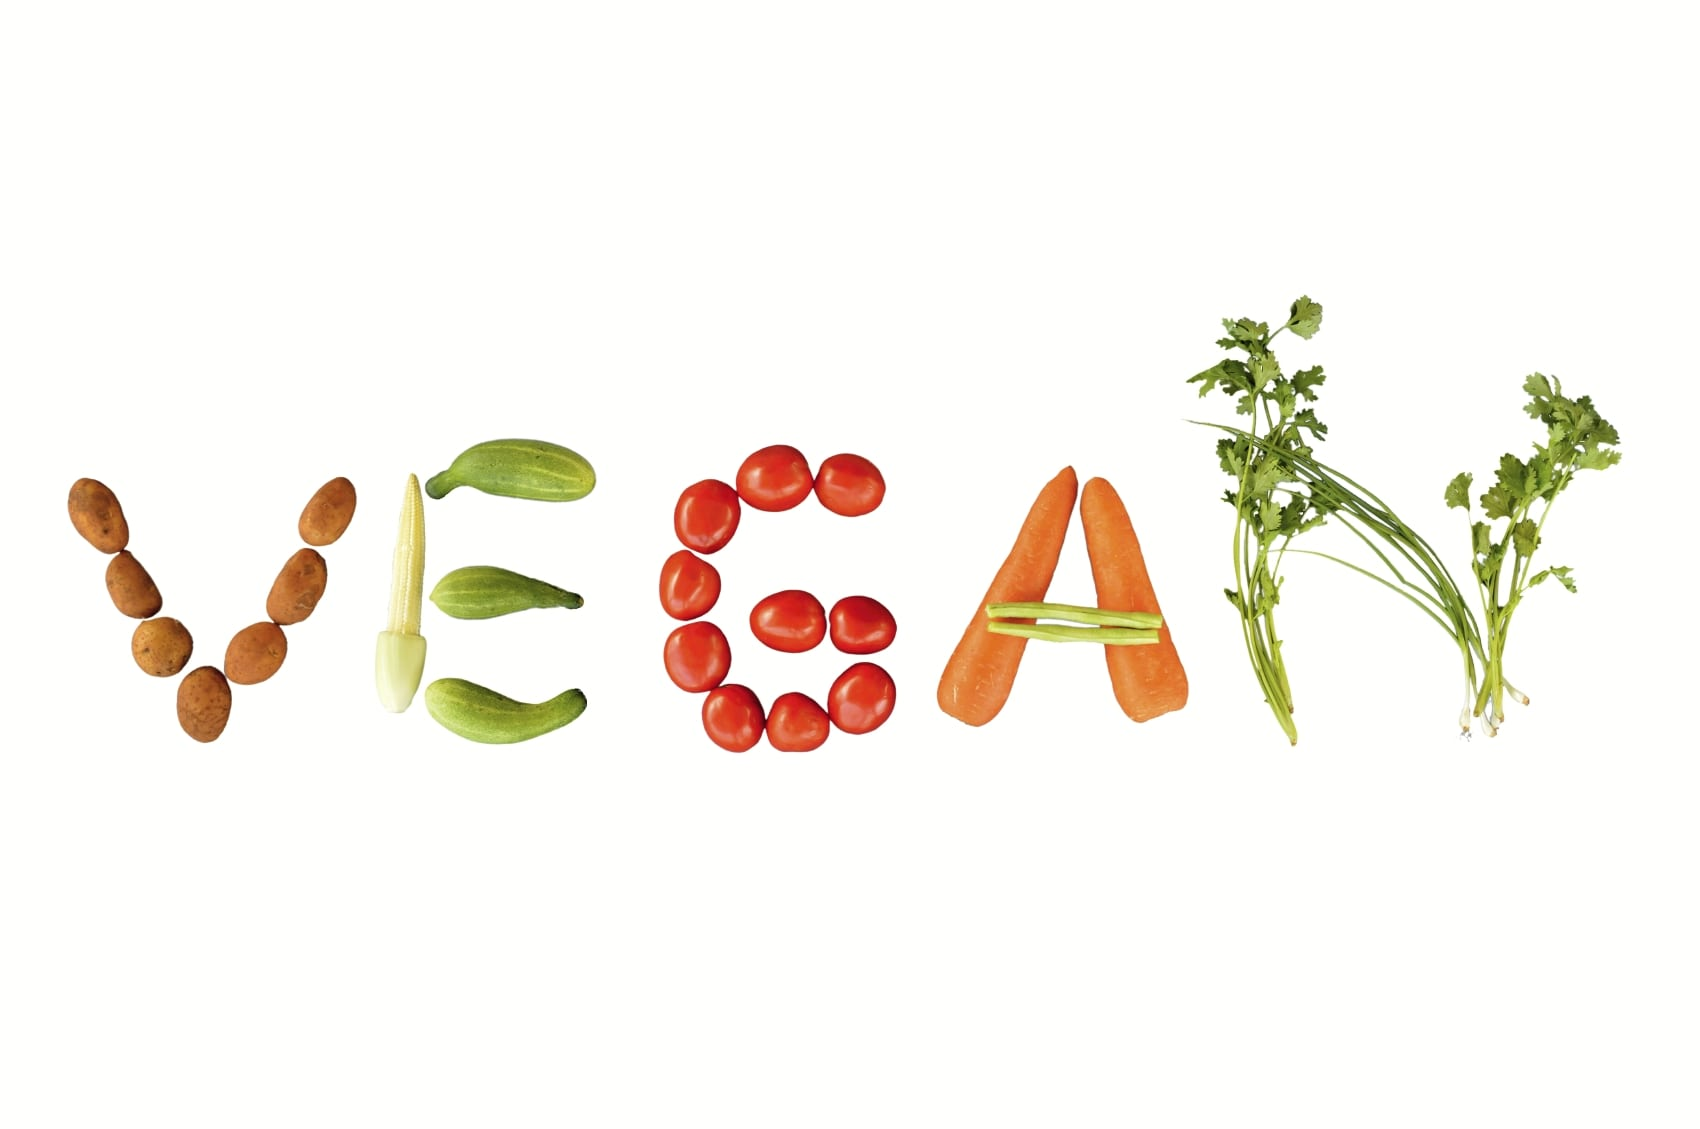 How Did Social Media Help Veganism Become Mainstream?